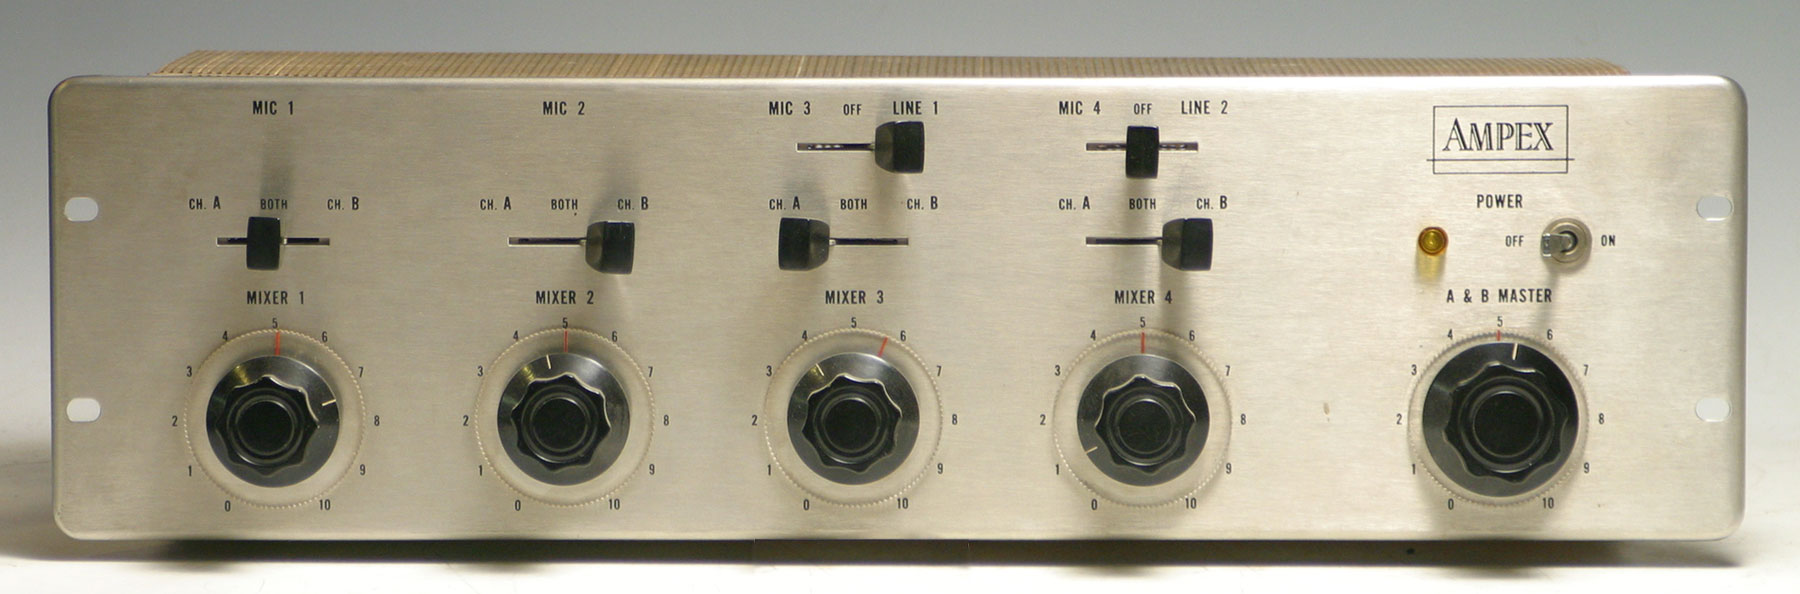 Mono Stereo Londonjazzcollector To Circuit Ampex Mx 10 Small1